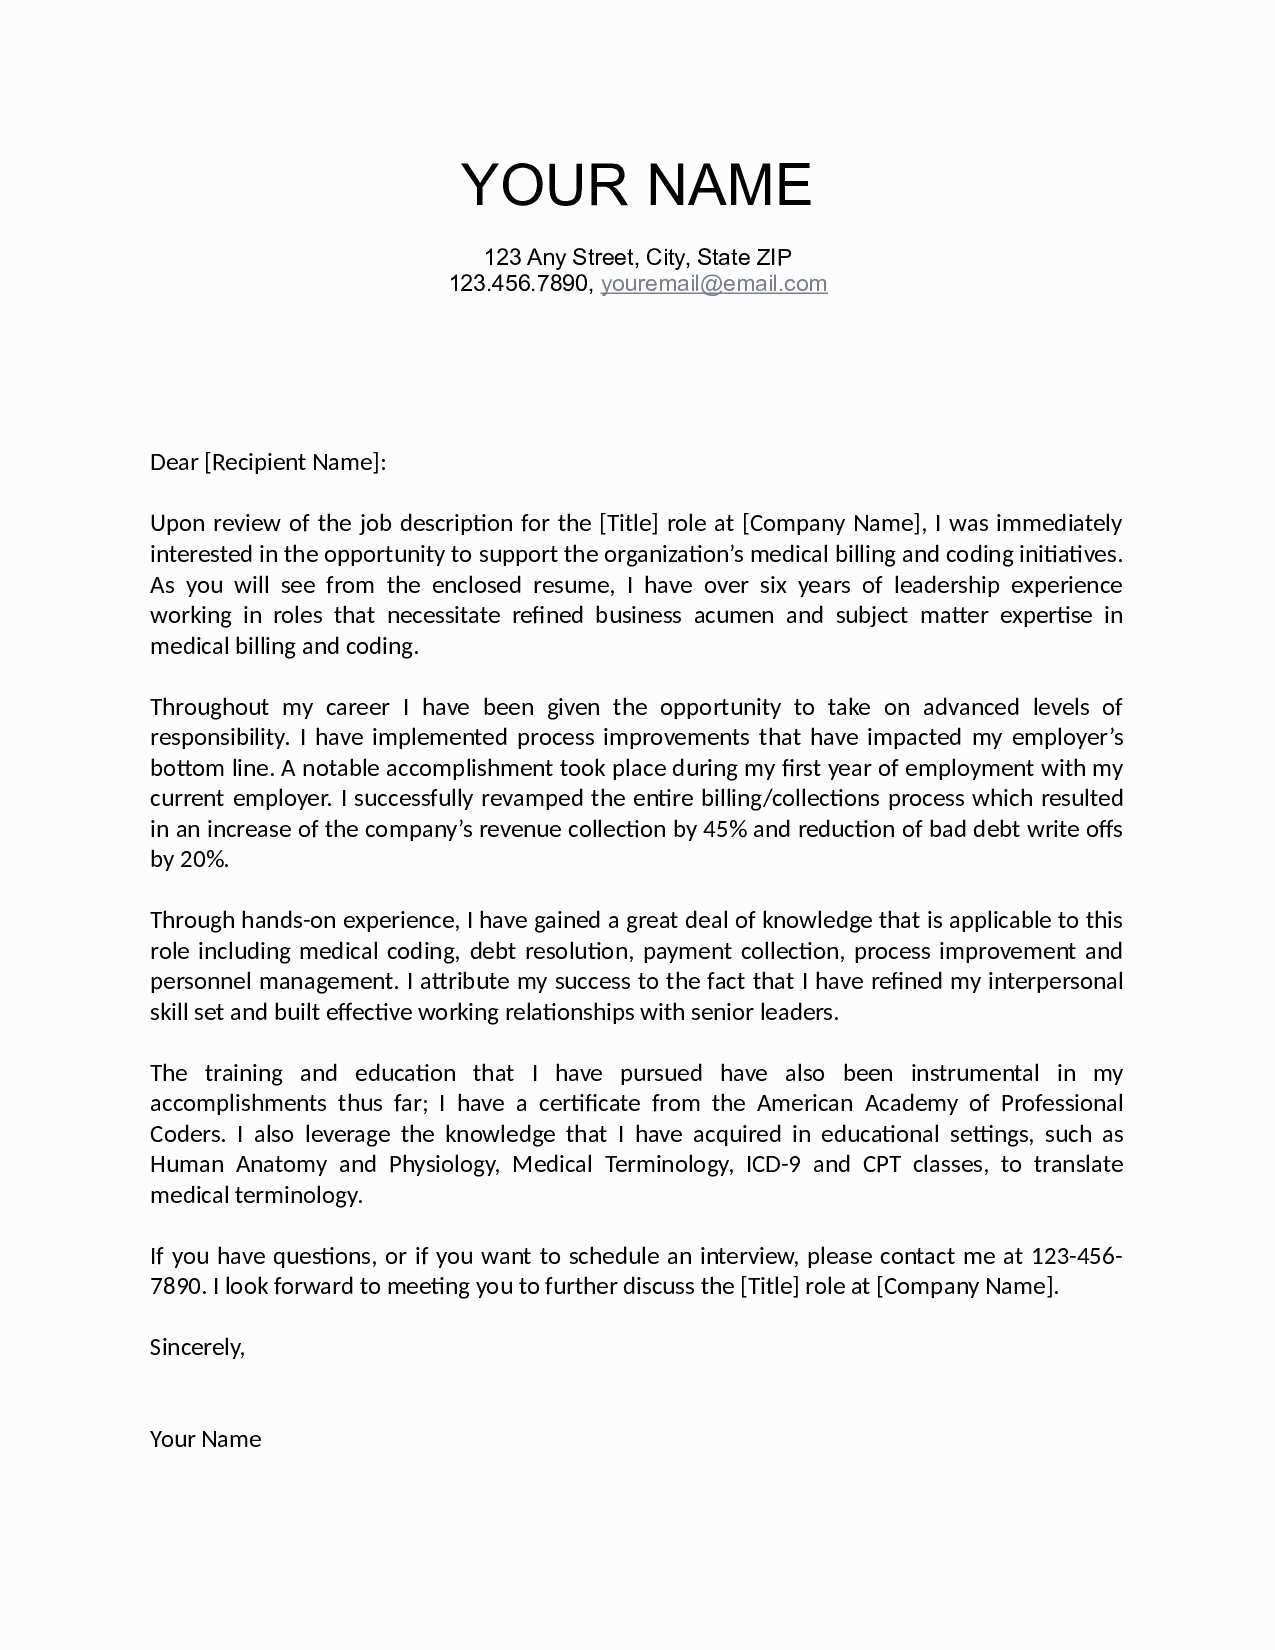 No Show Fee Letter Template - Sample Cover Letter Template Awesome Fee Schedule Template Unique